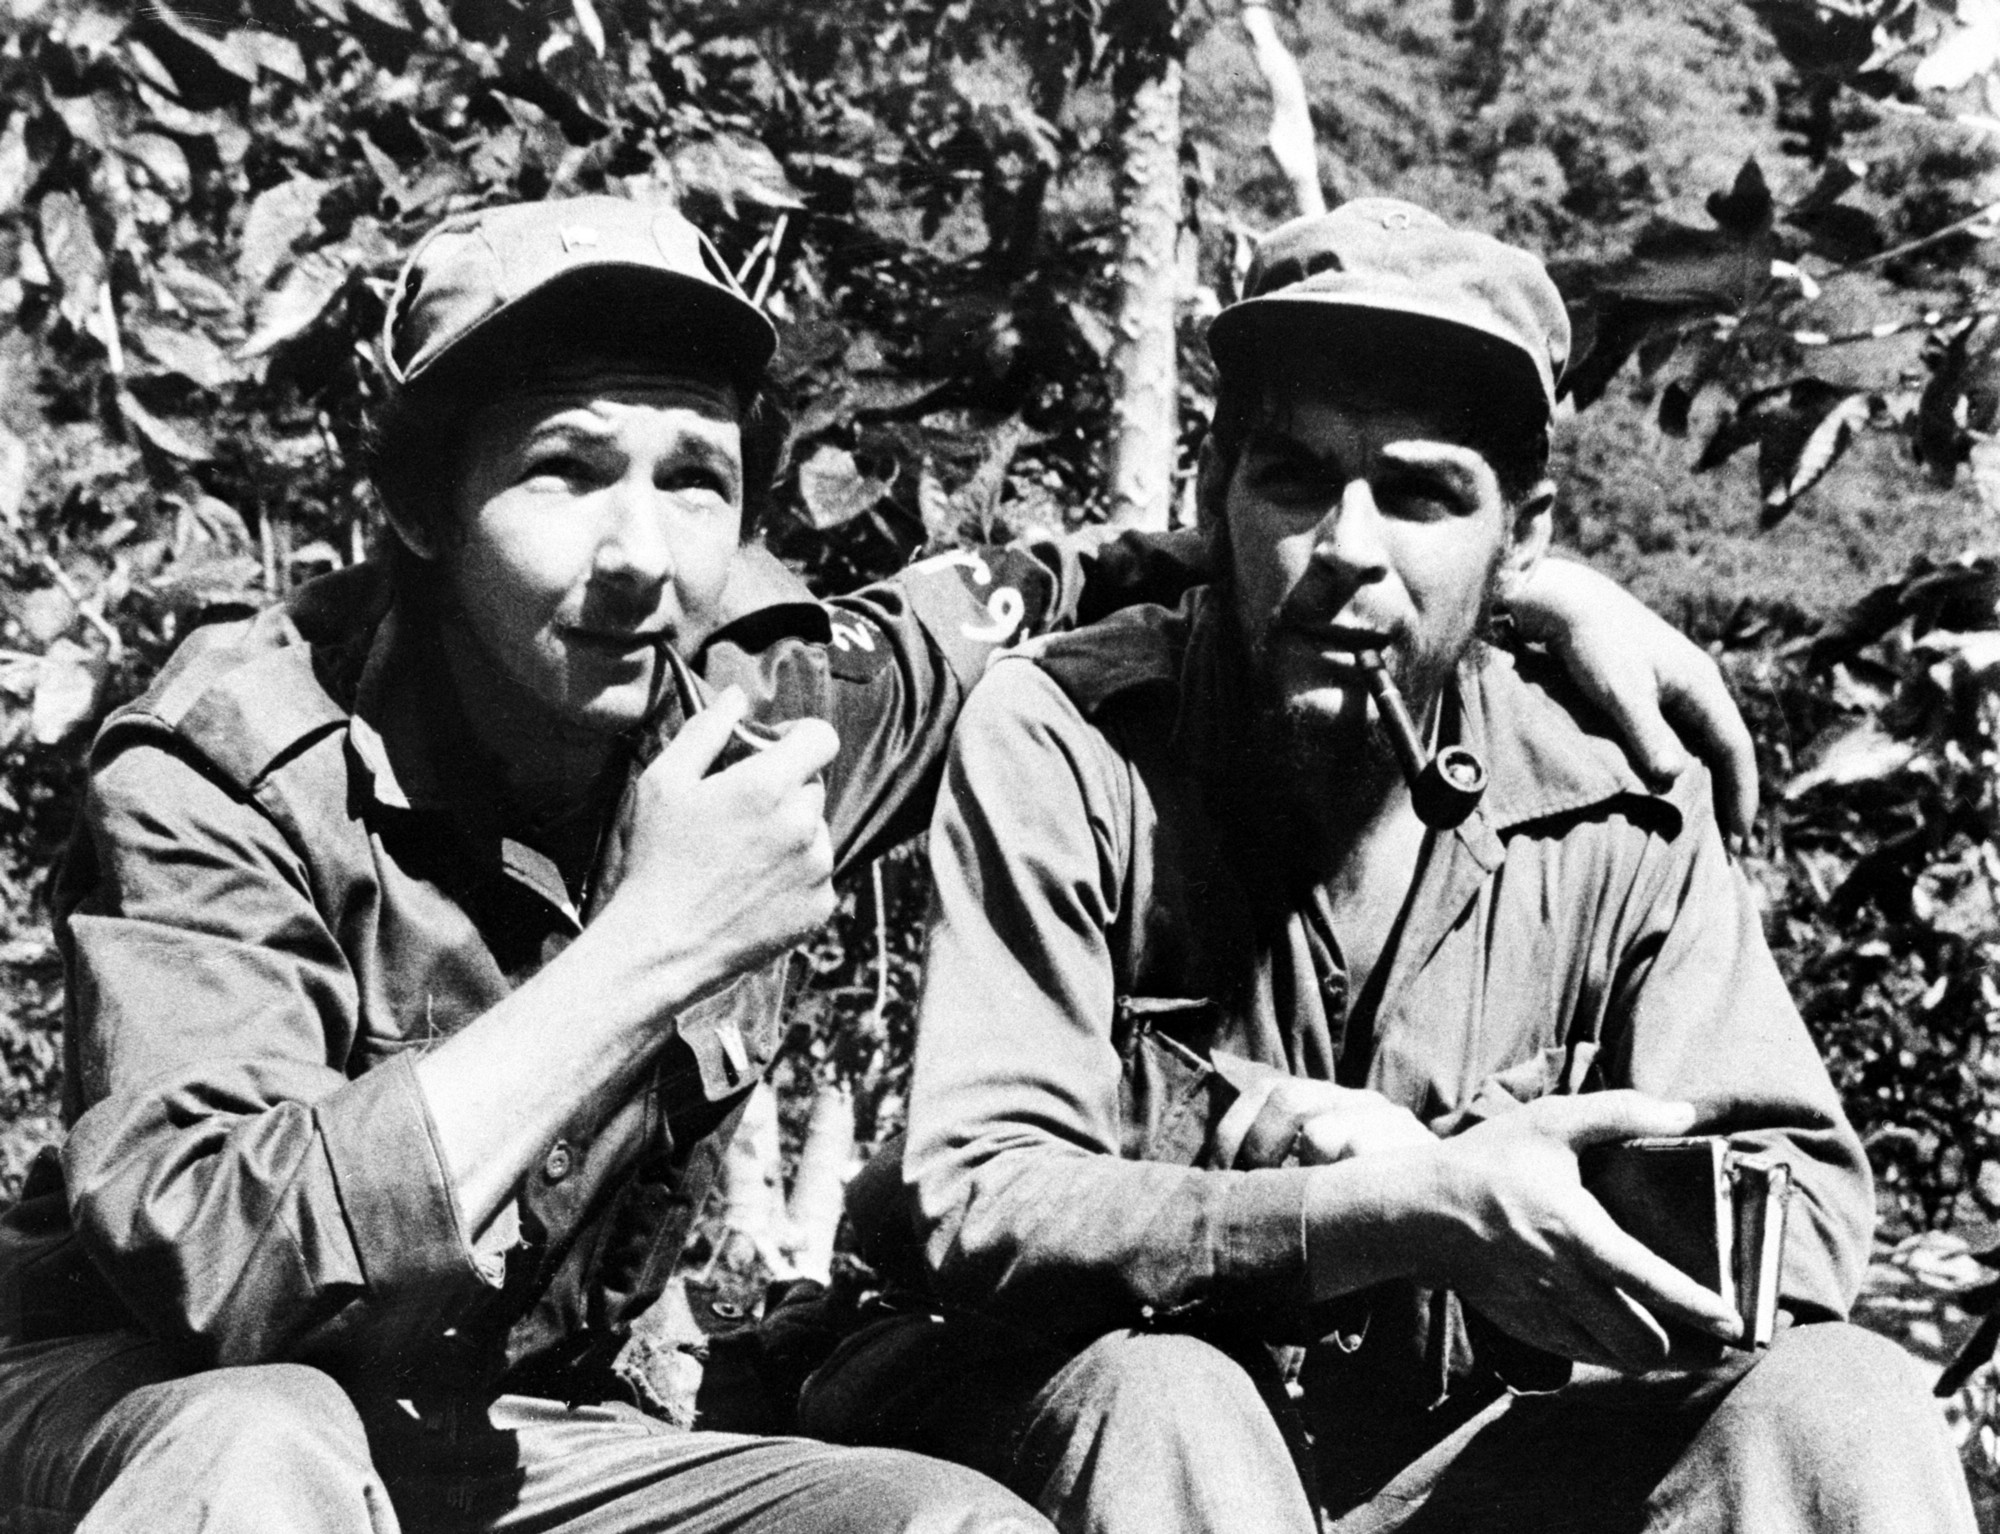 Raúl Castro, left, with has his arm around second-in-command, Ernesto Che Guevara, in Cuba.|By Anonymous [Public domain], via Wikimedia Commons